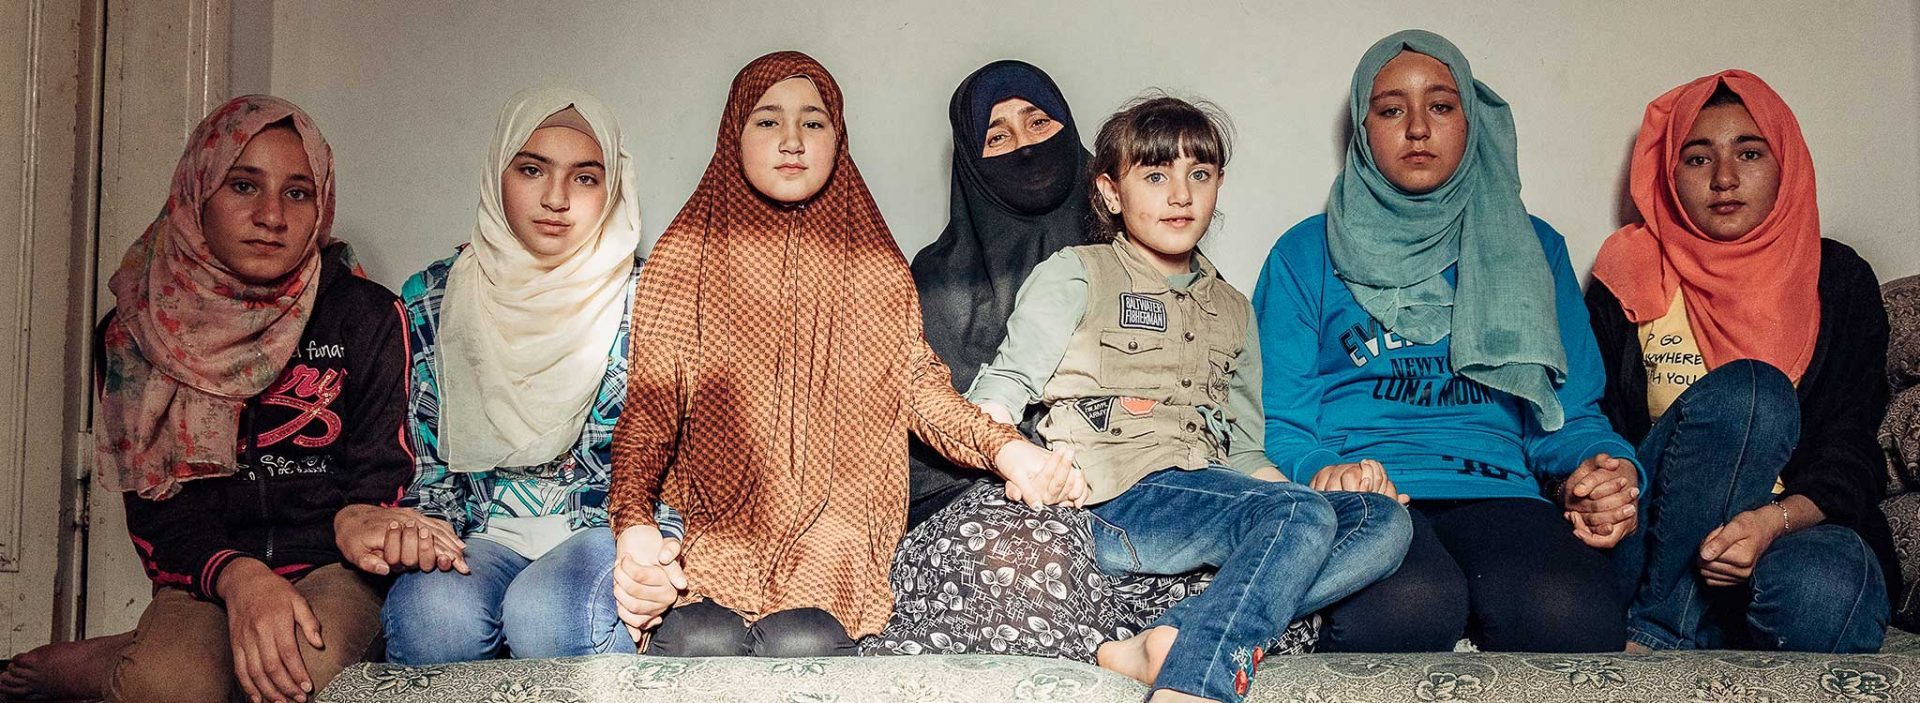 A group of Syrian refugee children in Jordan.